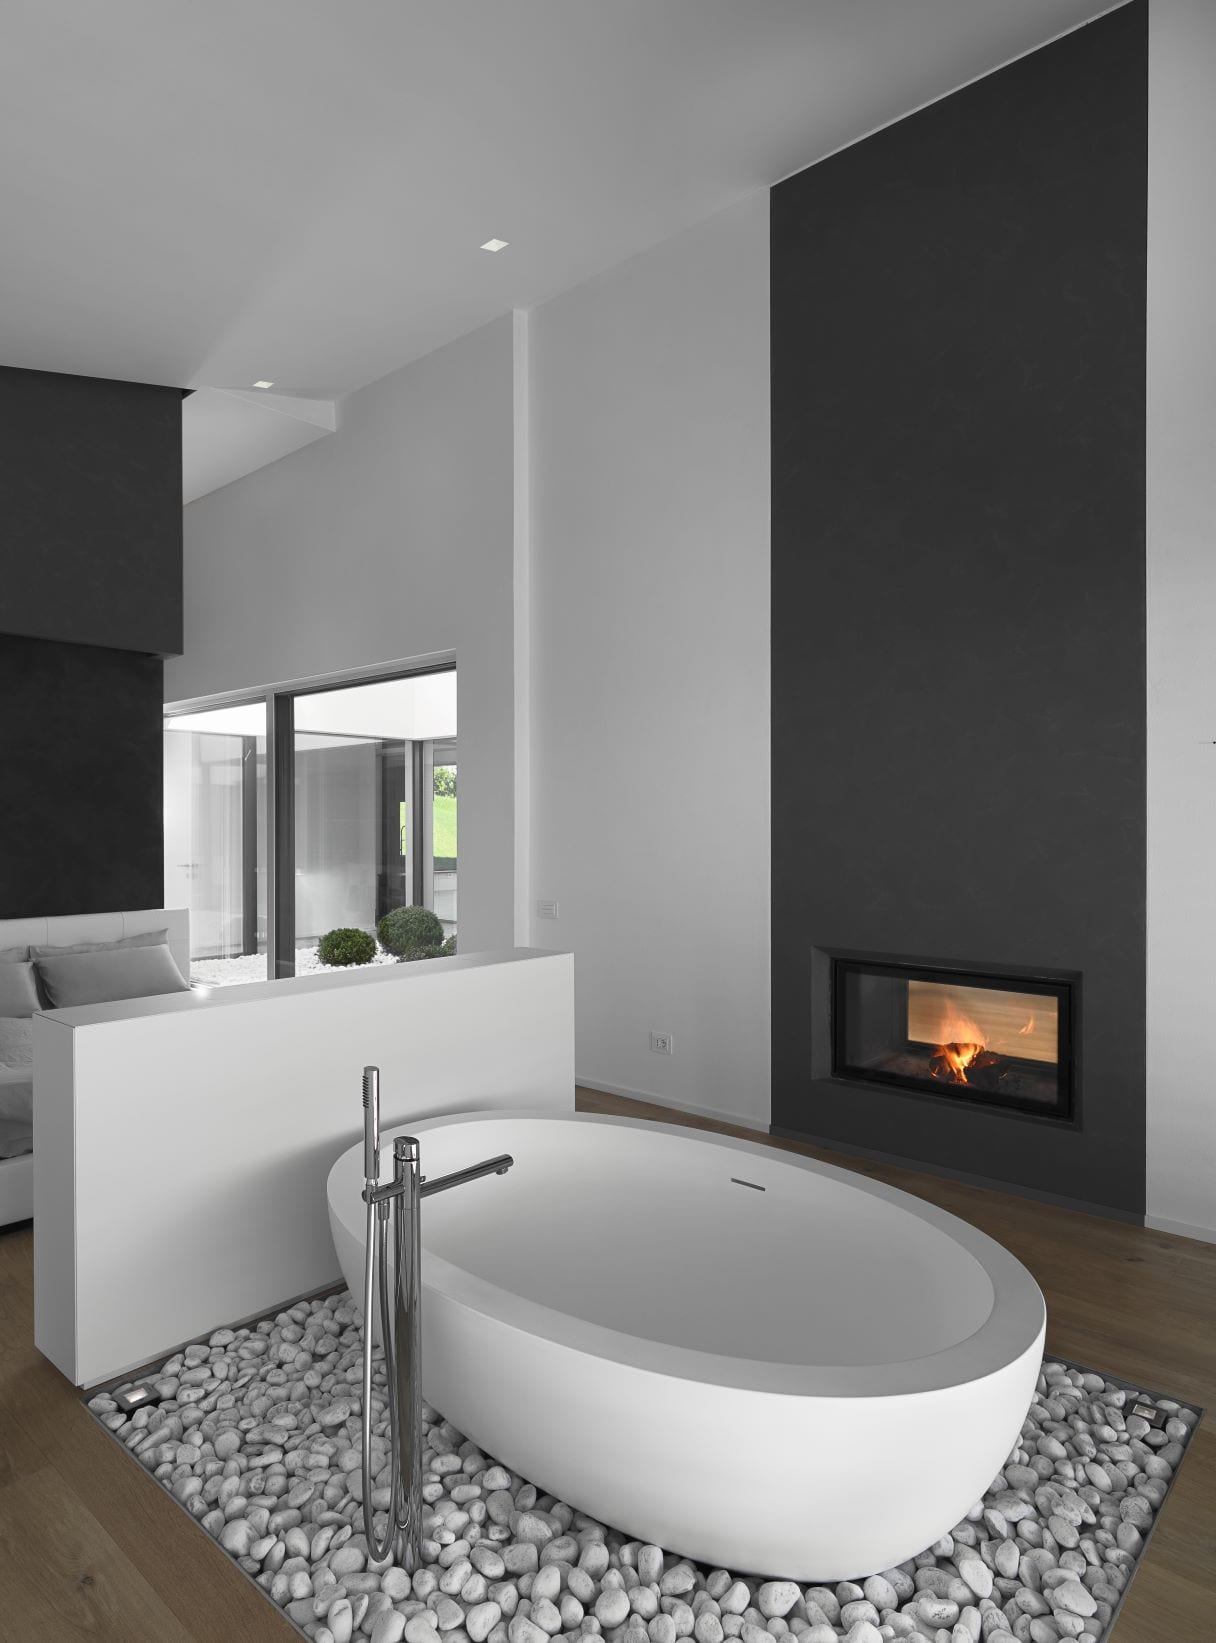 Cozy up the bedroom with a gas fireplace